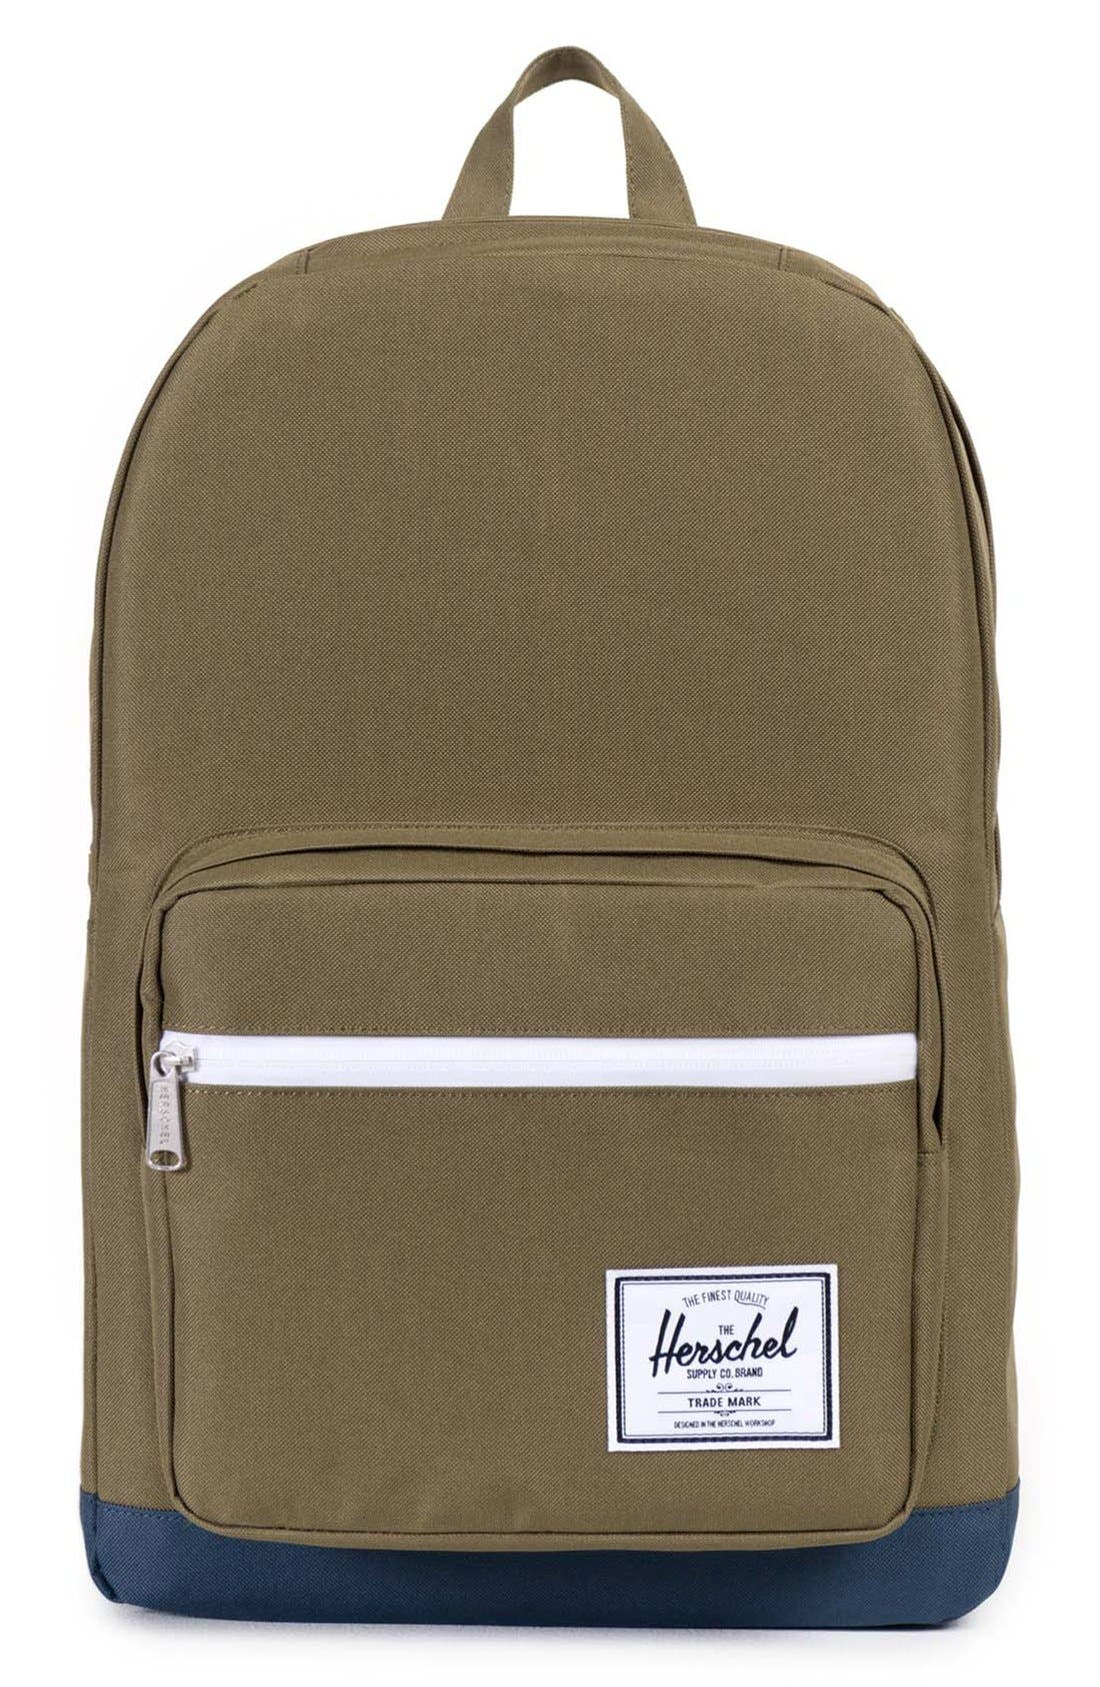 'Pop Quiz' Backpack,                         Main,                         color, Army/ Navy